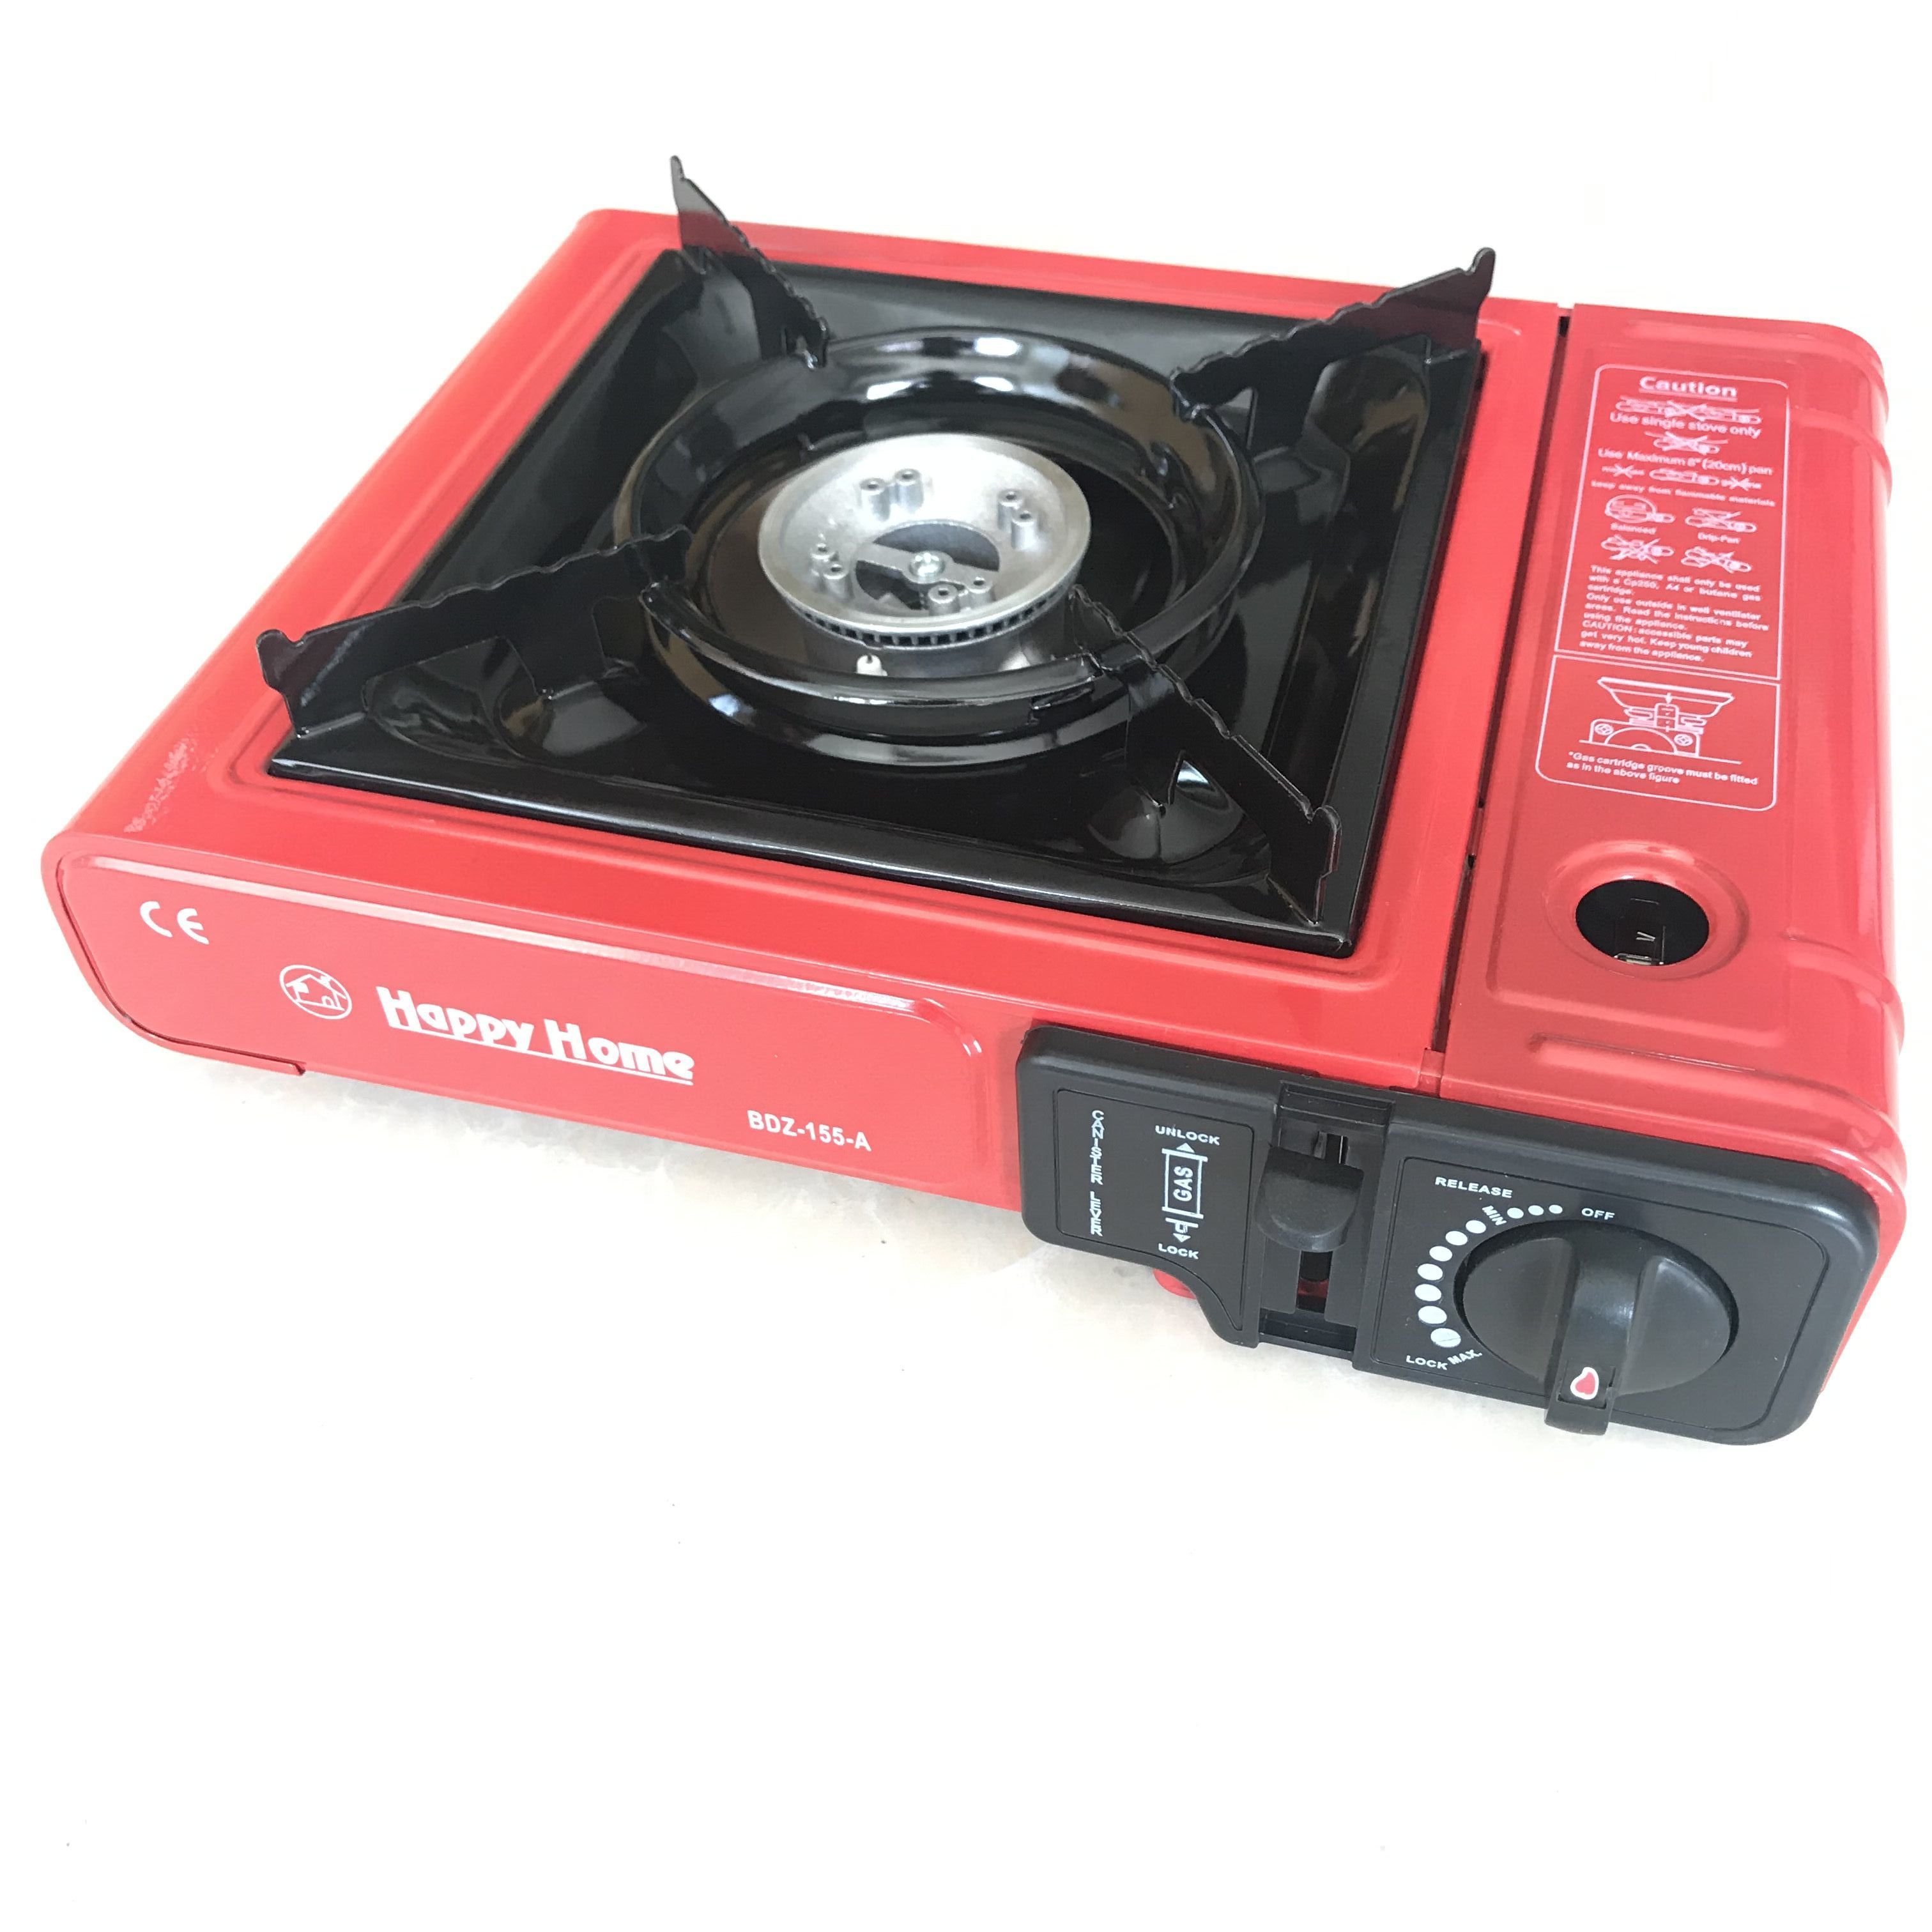 Happy Home Brands BDZ-155 Factory Camping Butane Portable Gas Stove